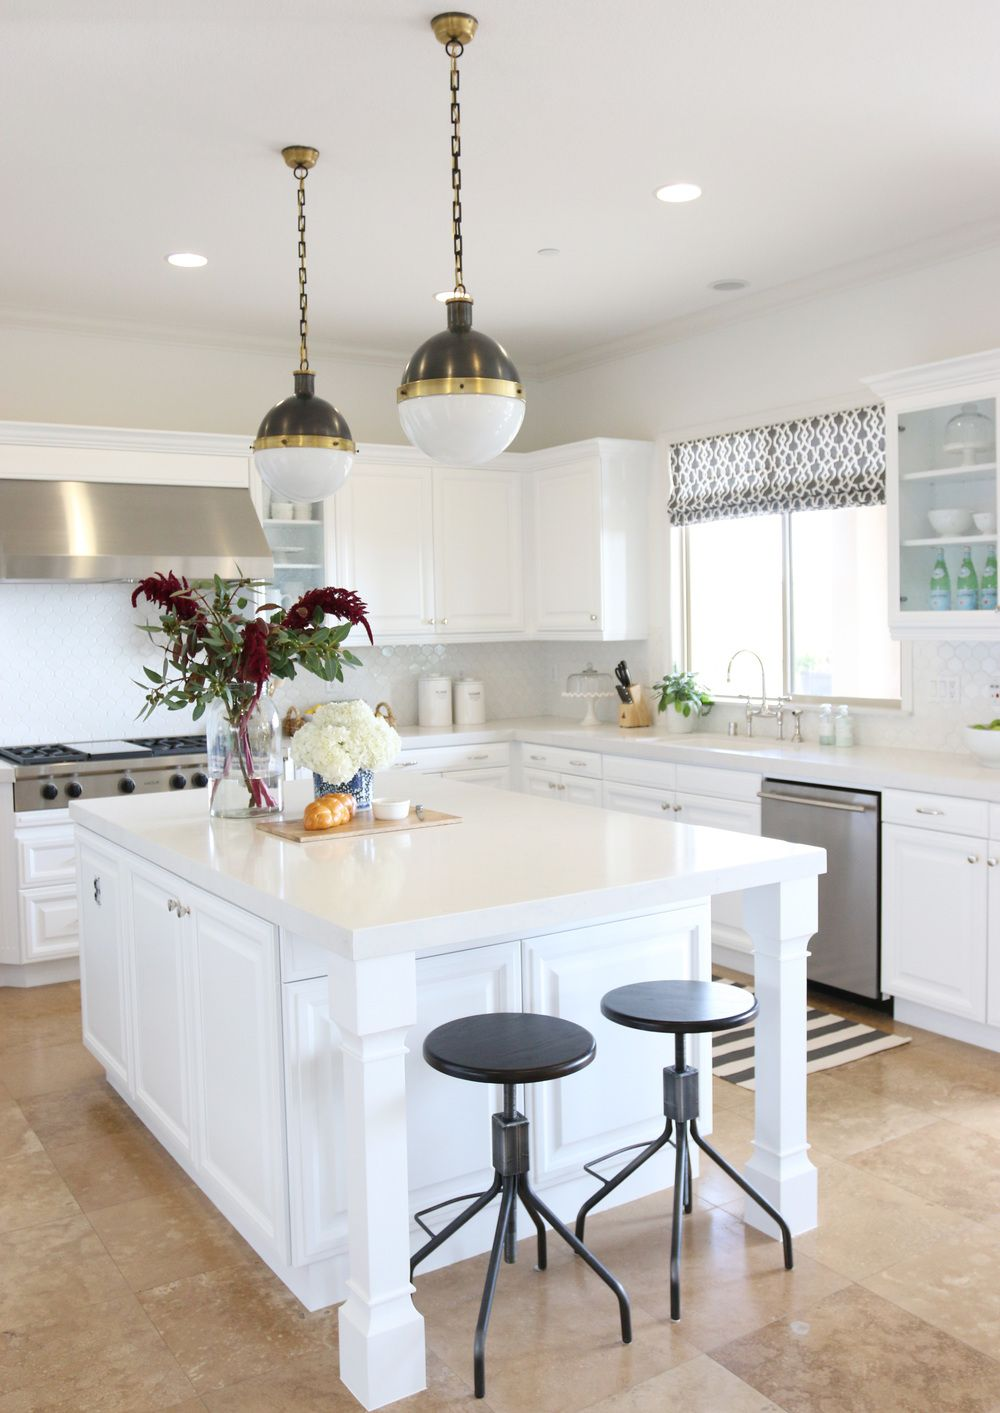 San Clemente Kitchen Makeover Before/After   Studio mcgee, Kitchens ...